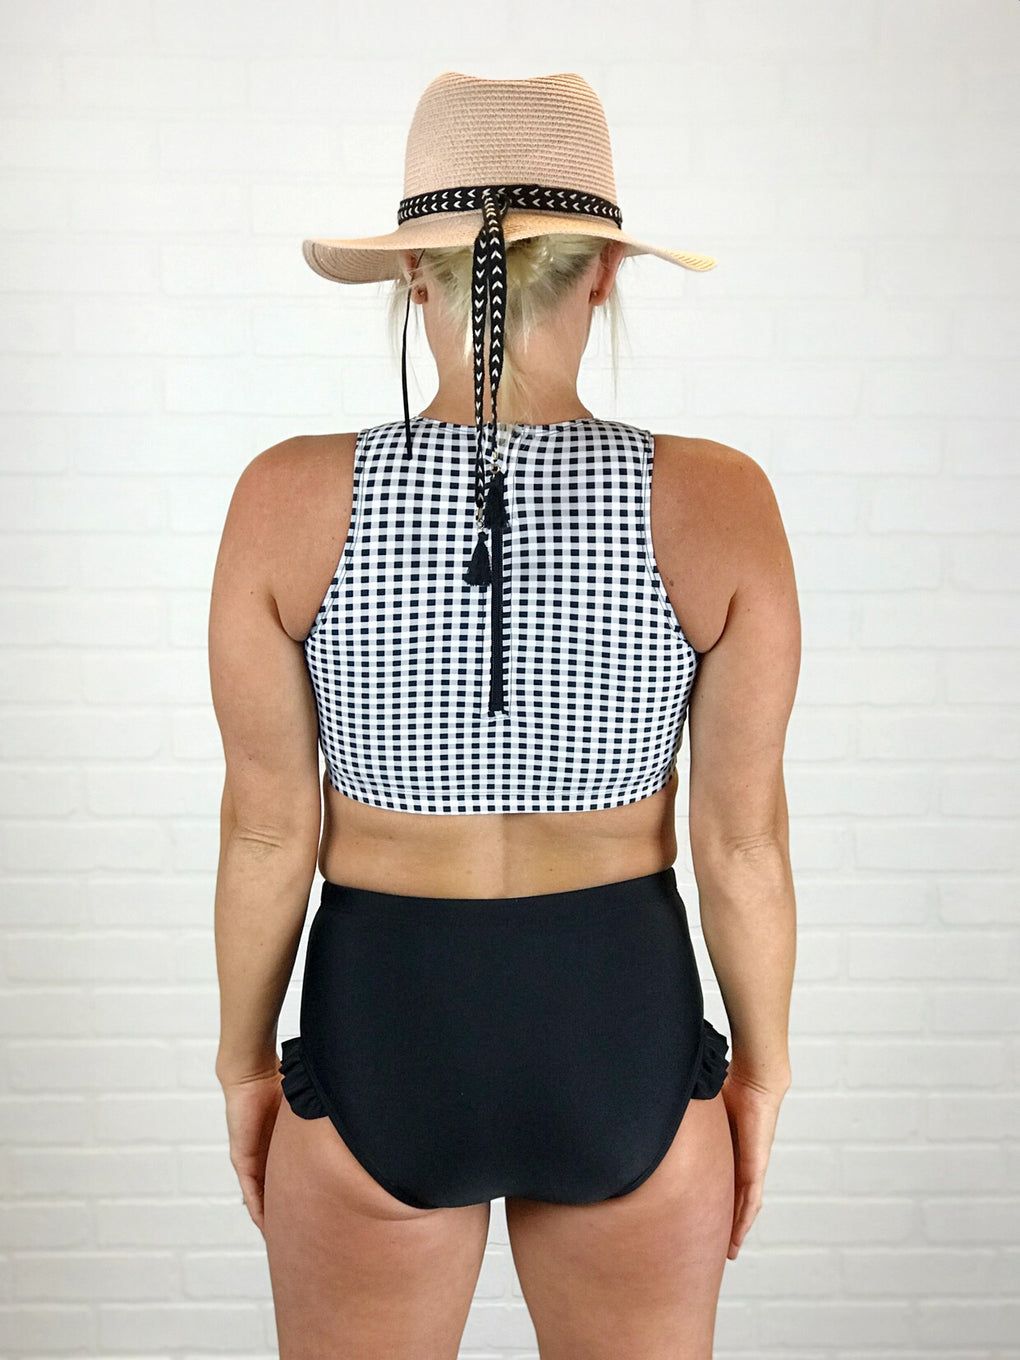 Coral Reef Separates - Checkered Sports Top